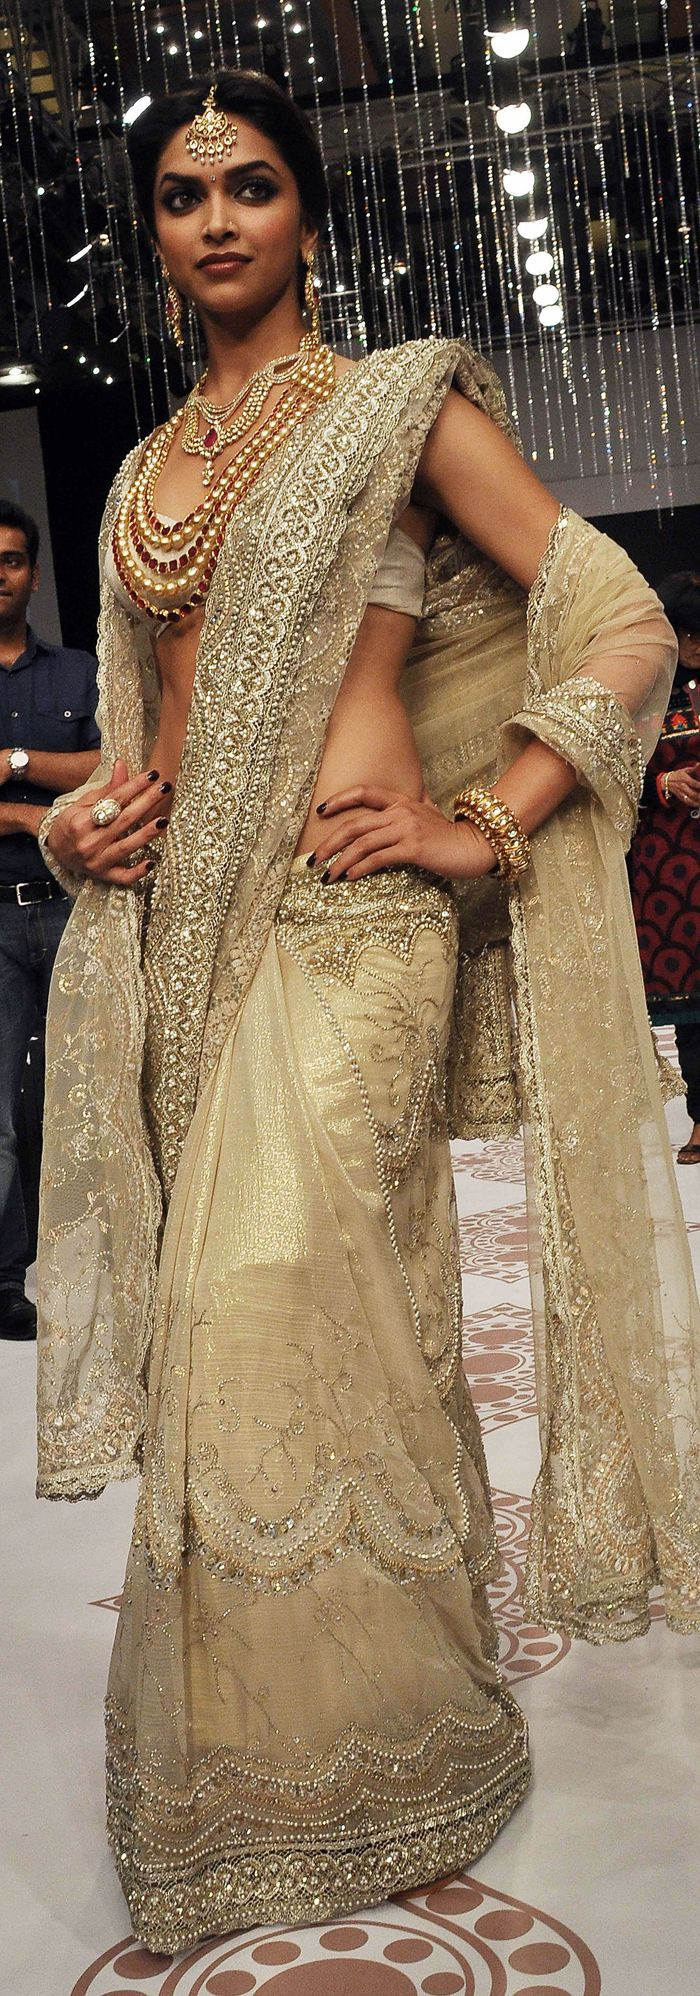 Indian Actor Deepika Padukone walks the ramp for Jewellery Designer Farah Khan http://www.farahkhan.net/ at the India International Jewellery Week, Aug 2010